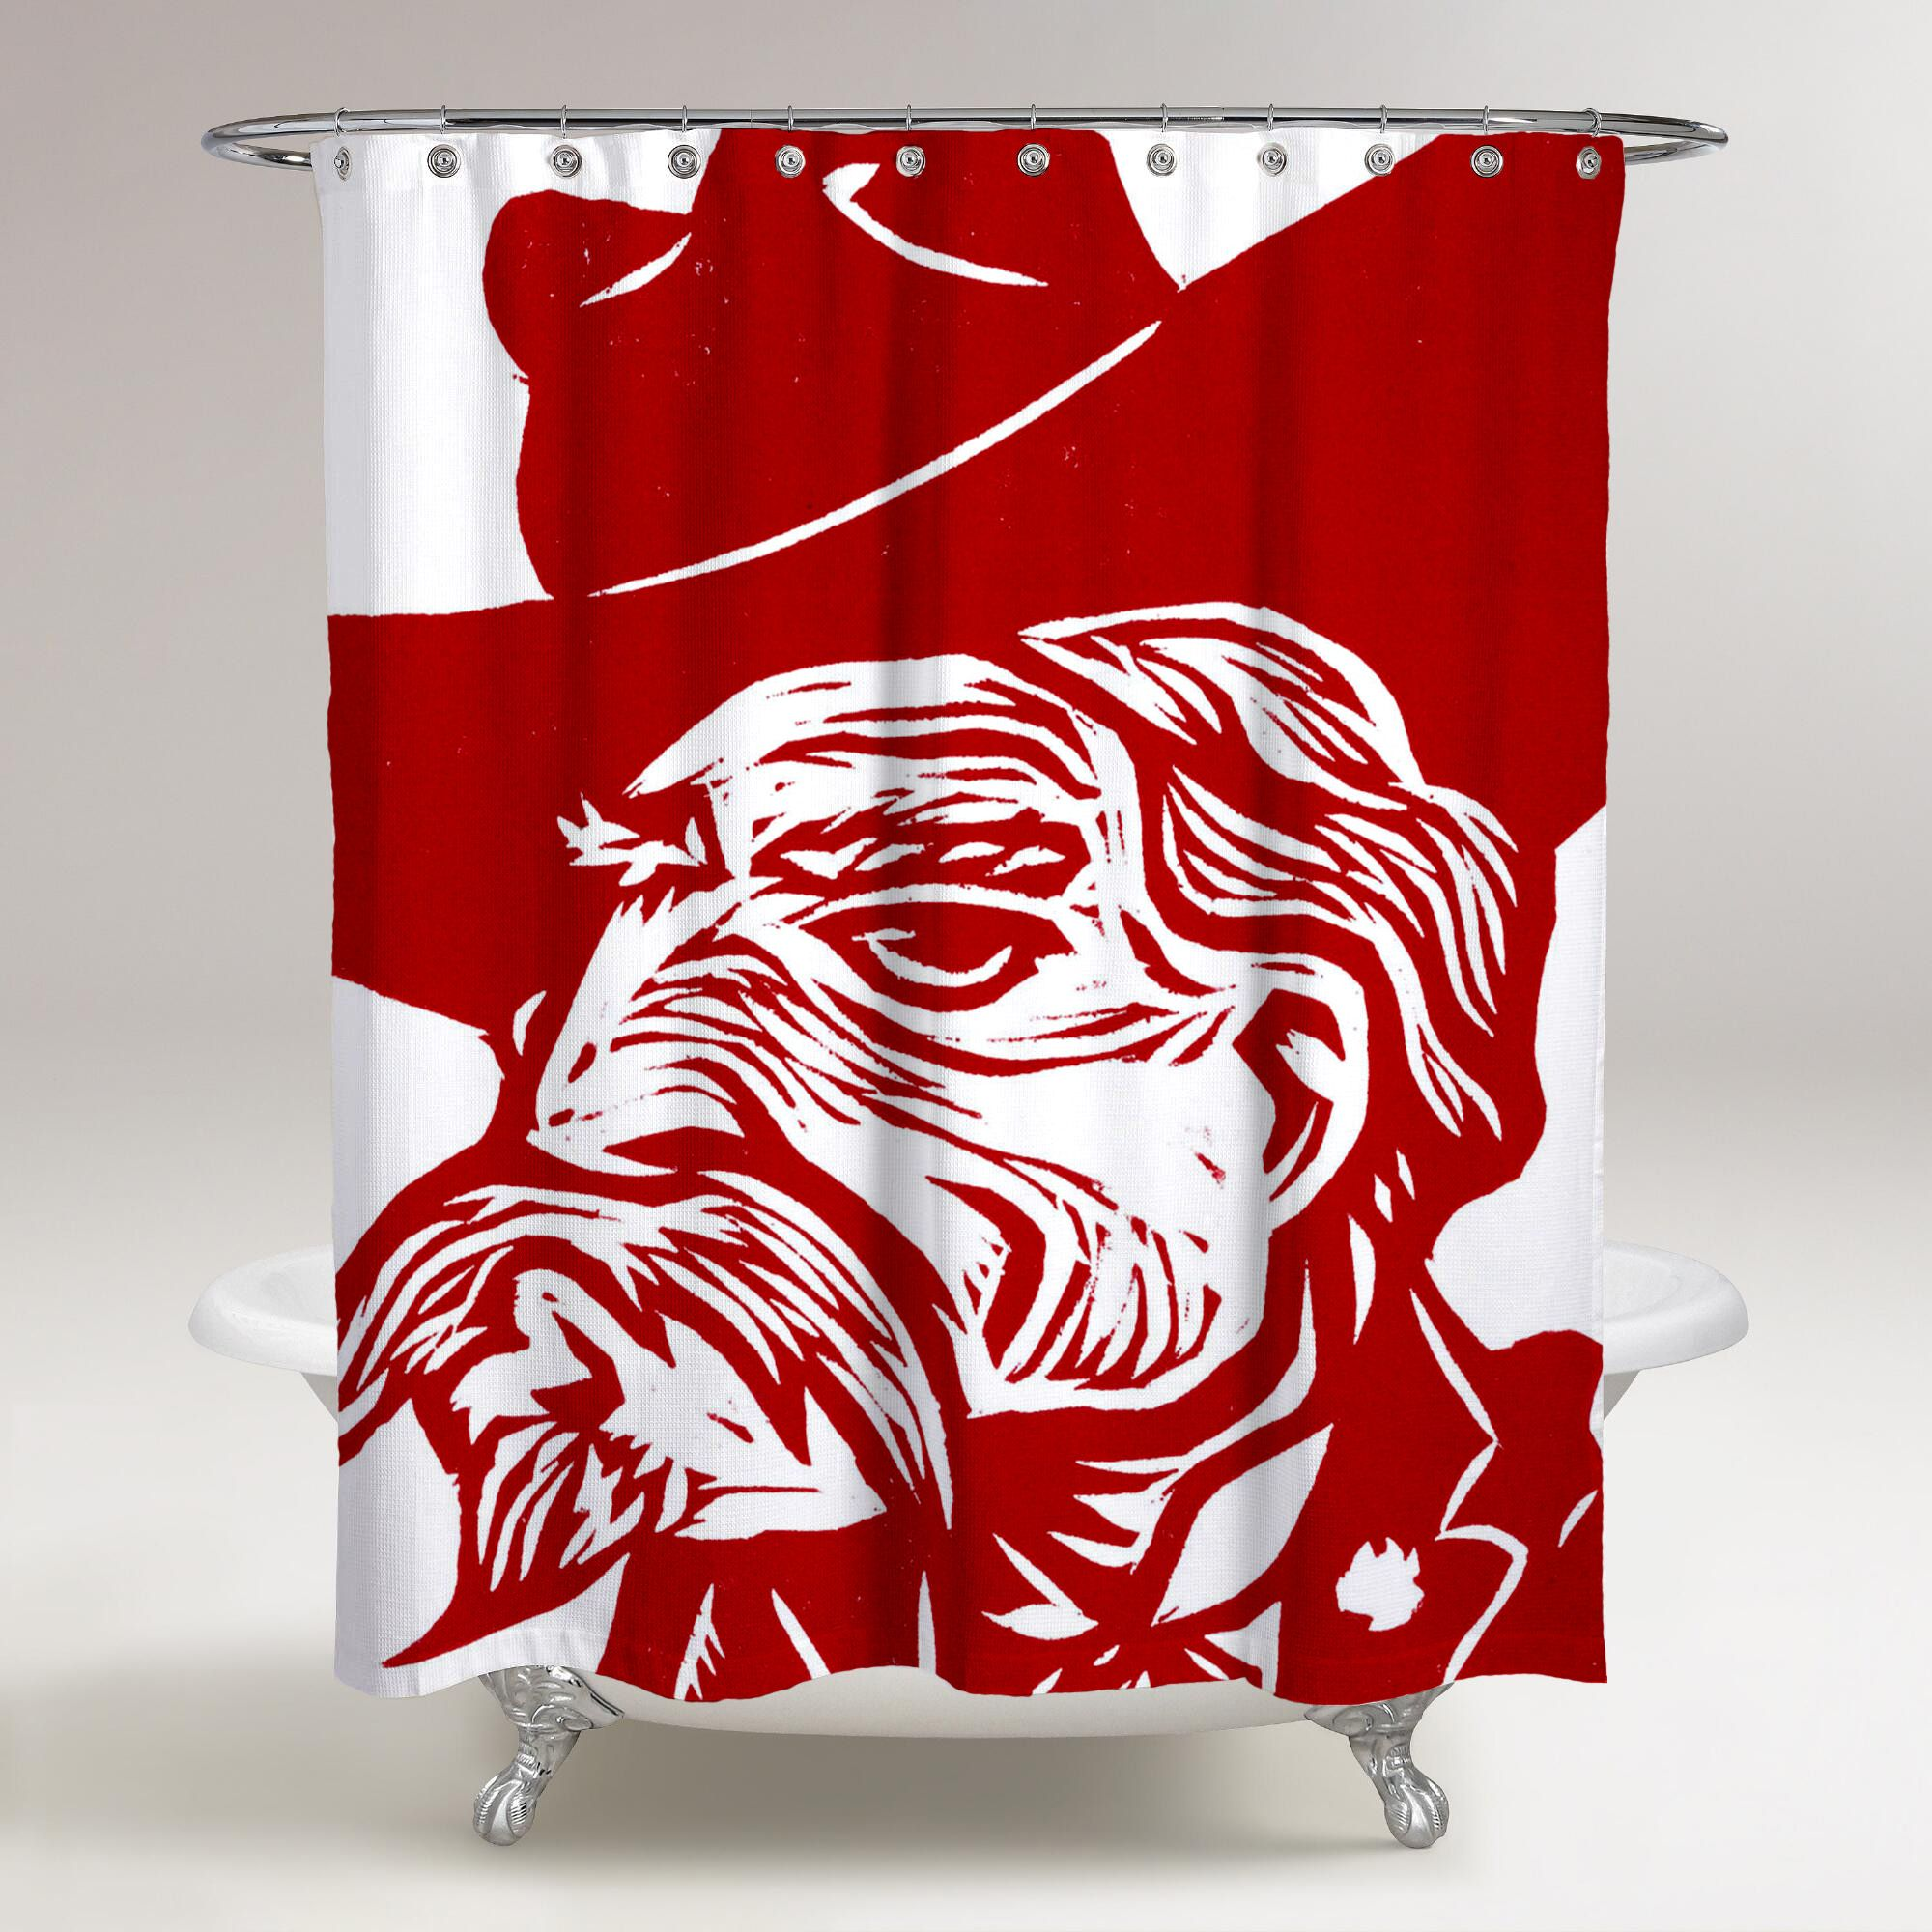 OLE MISS REBELS RED ART PAINTING LOGO WALLPAPER Printed Shower Curtain Bathroom Decor Price